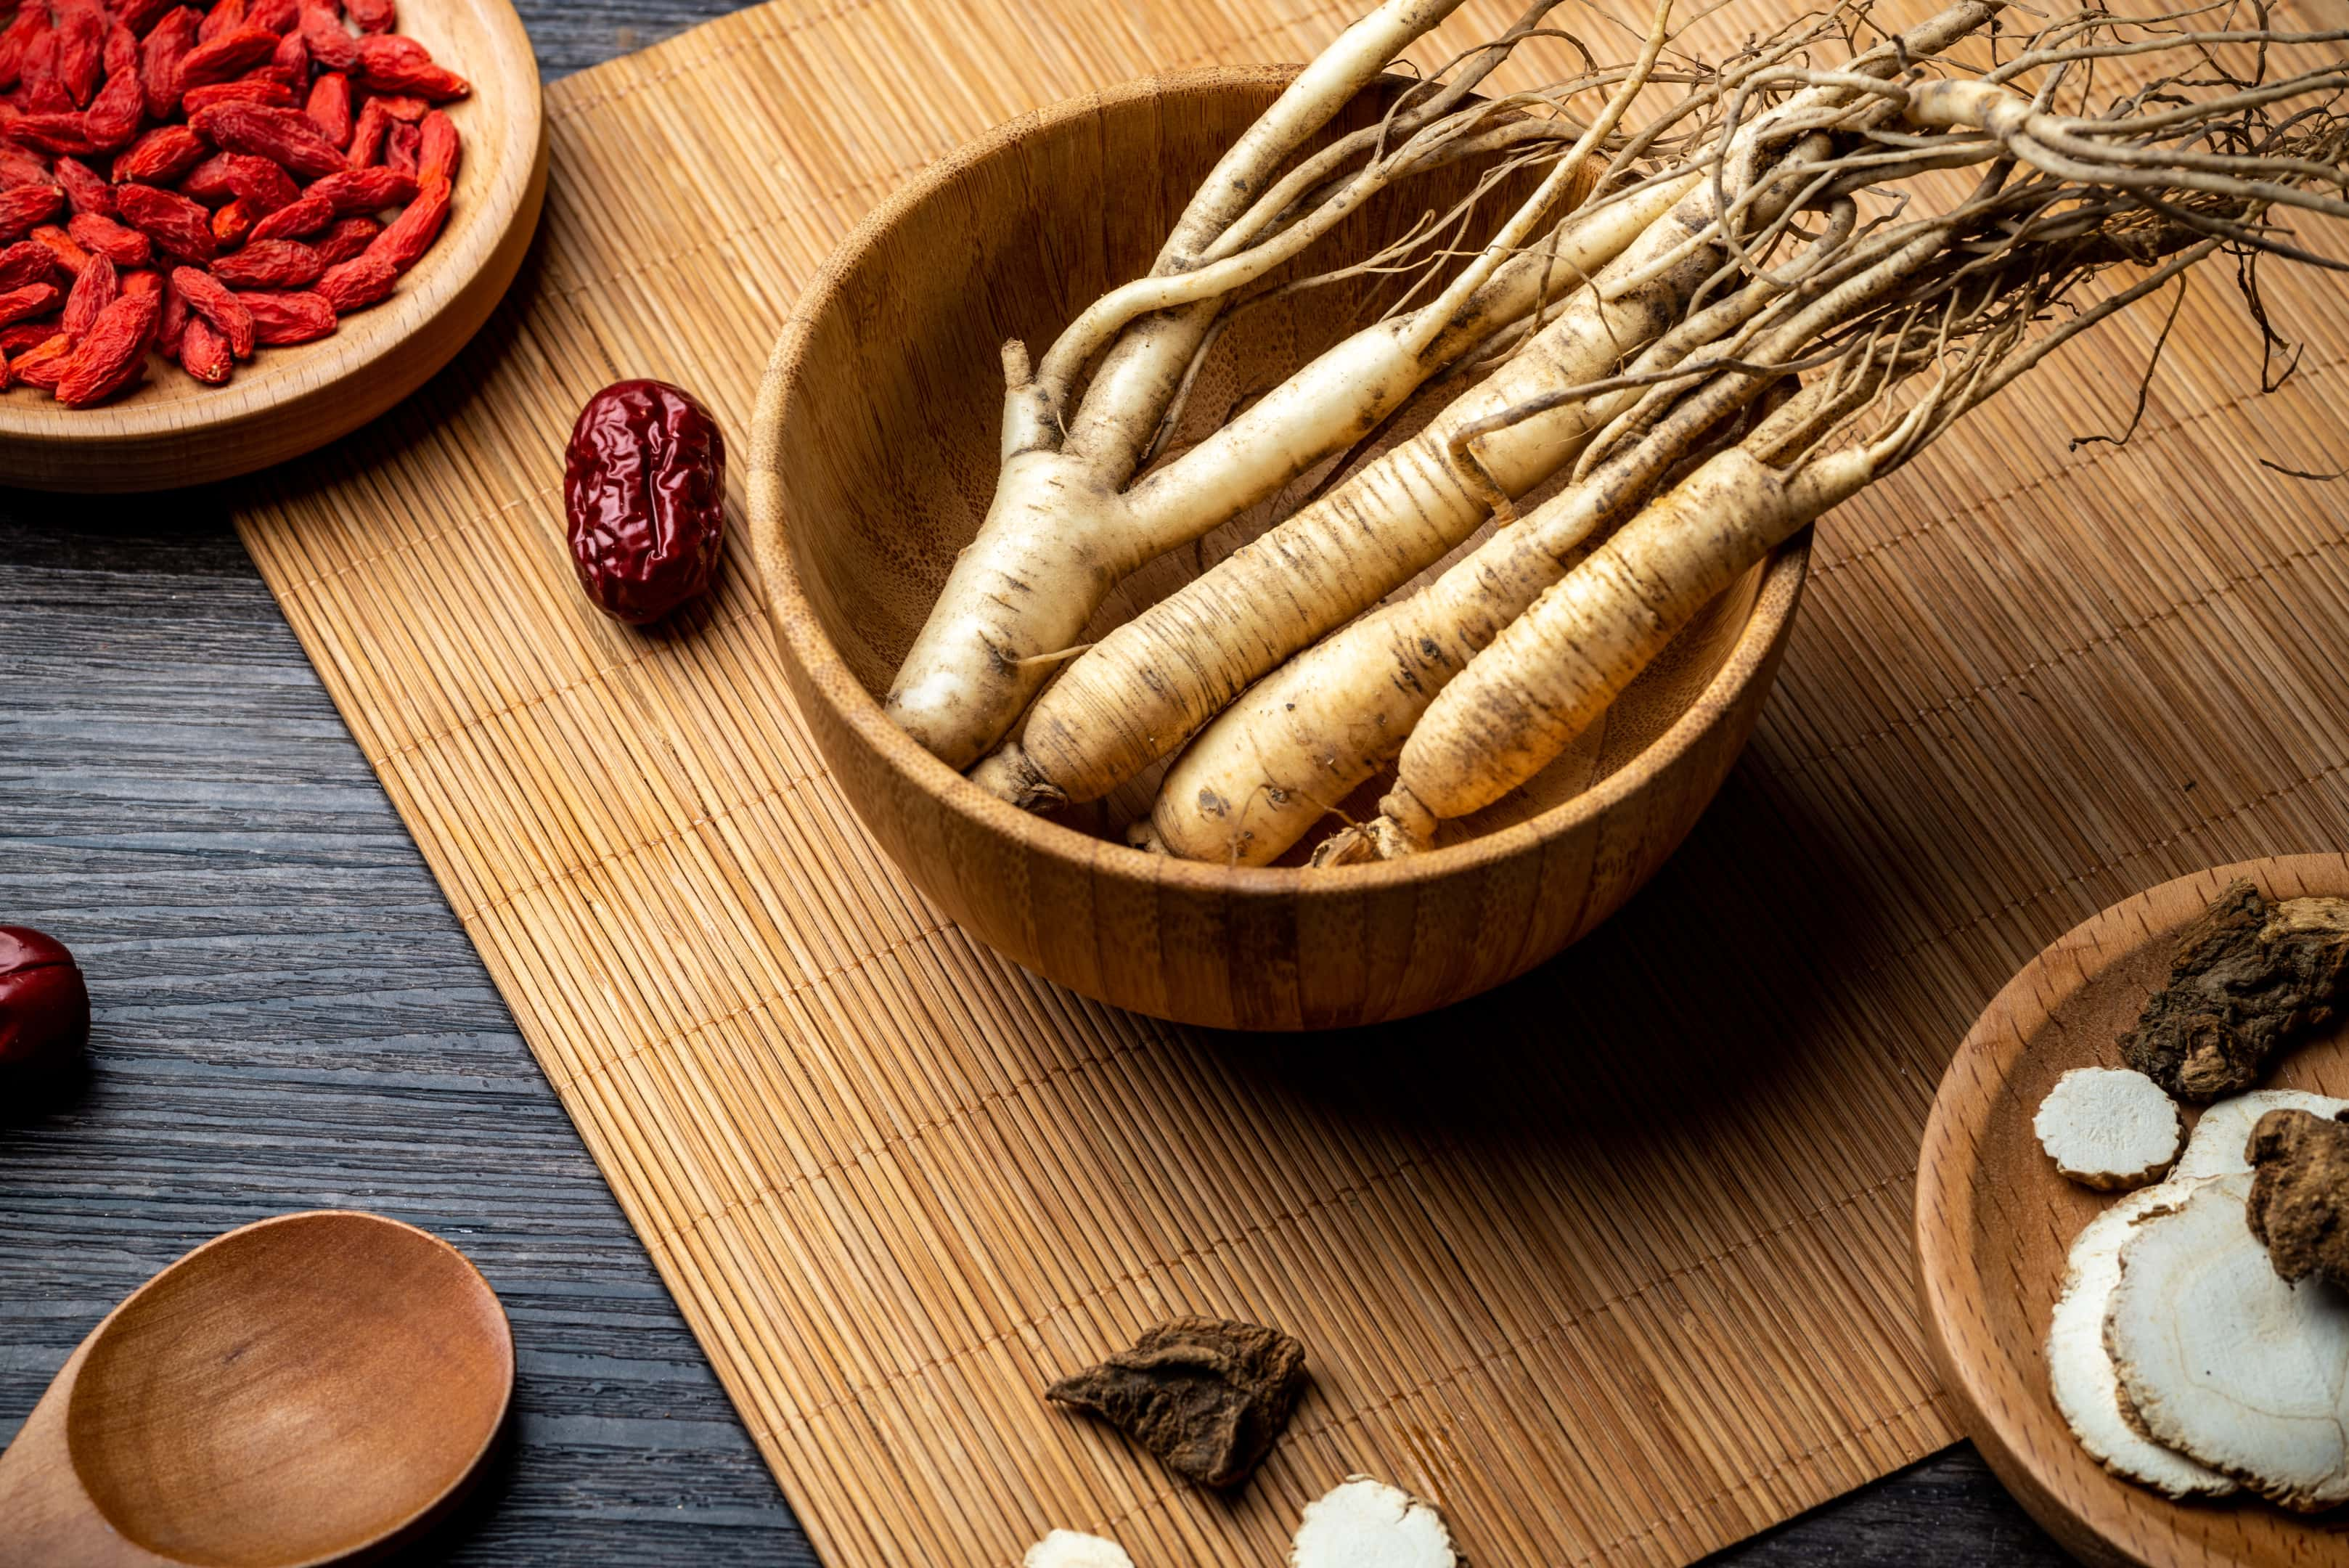 Ginseng wolfberry and jujube in wooden bowl